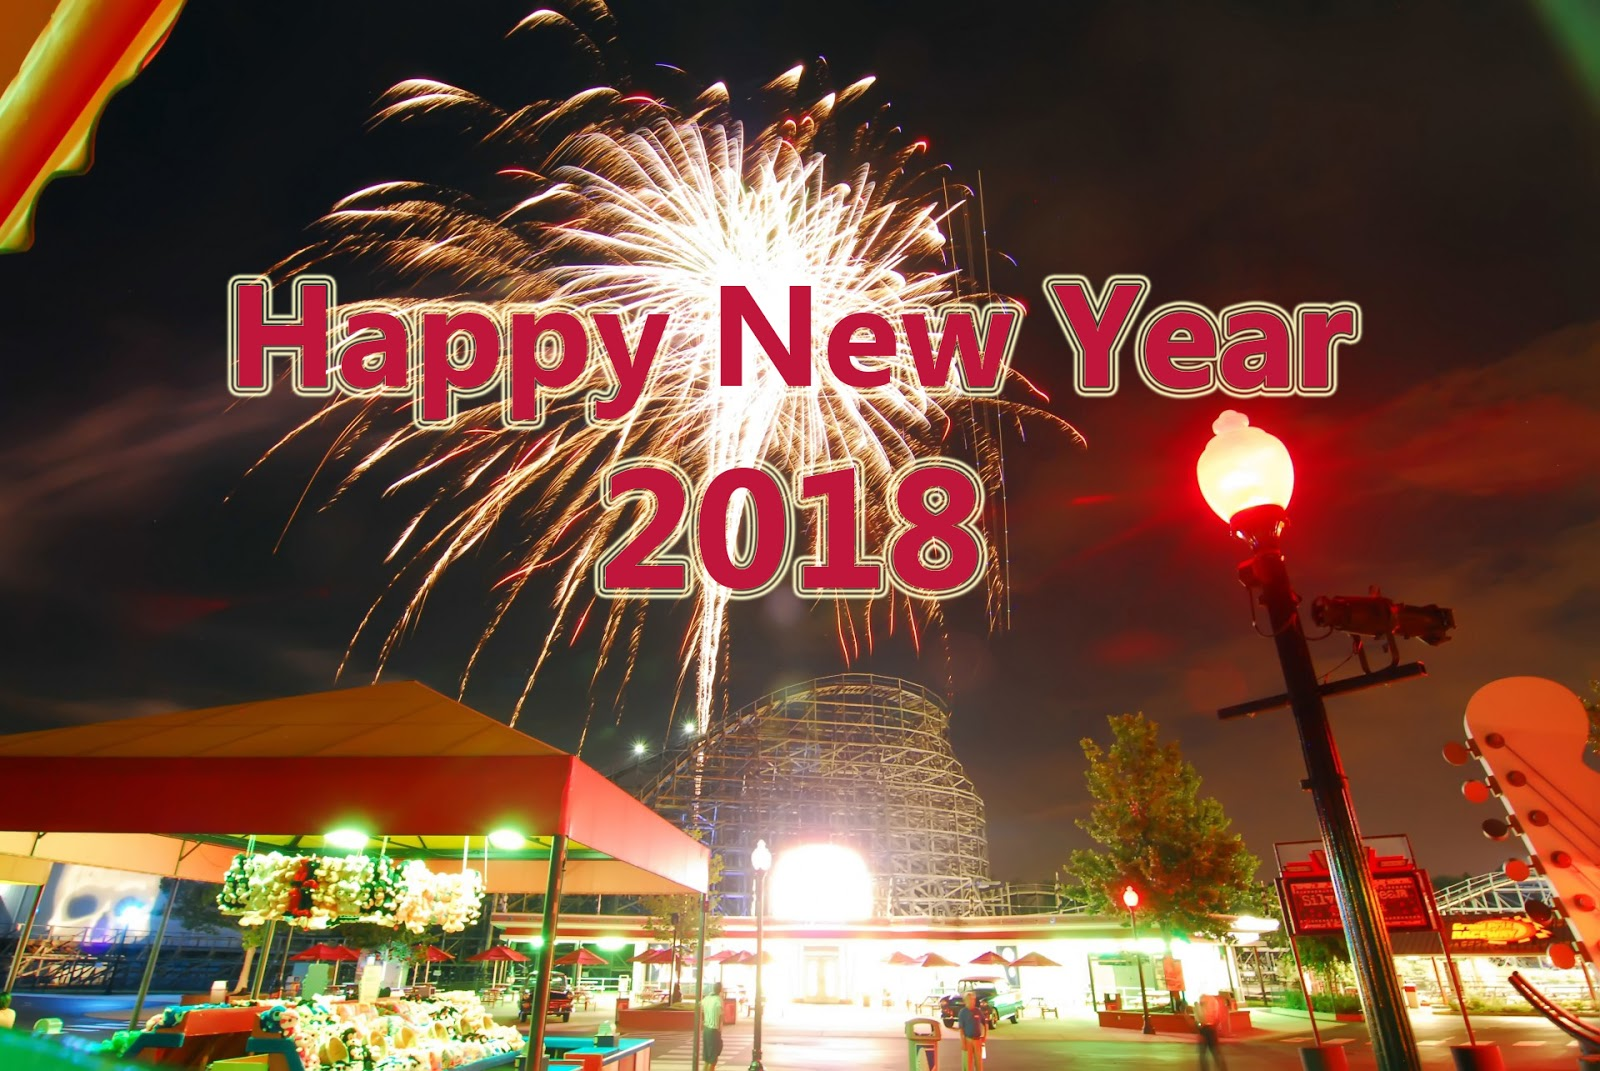 Good Happy New Year 2018 Wallpapers HD Images Happy New Year 2018 Wallpapers